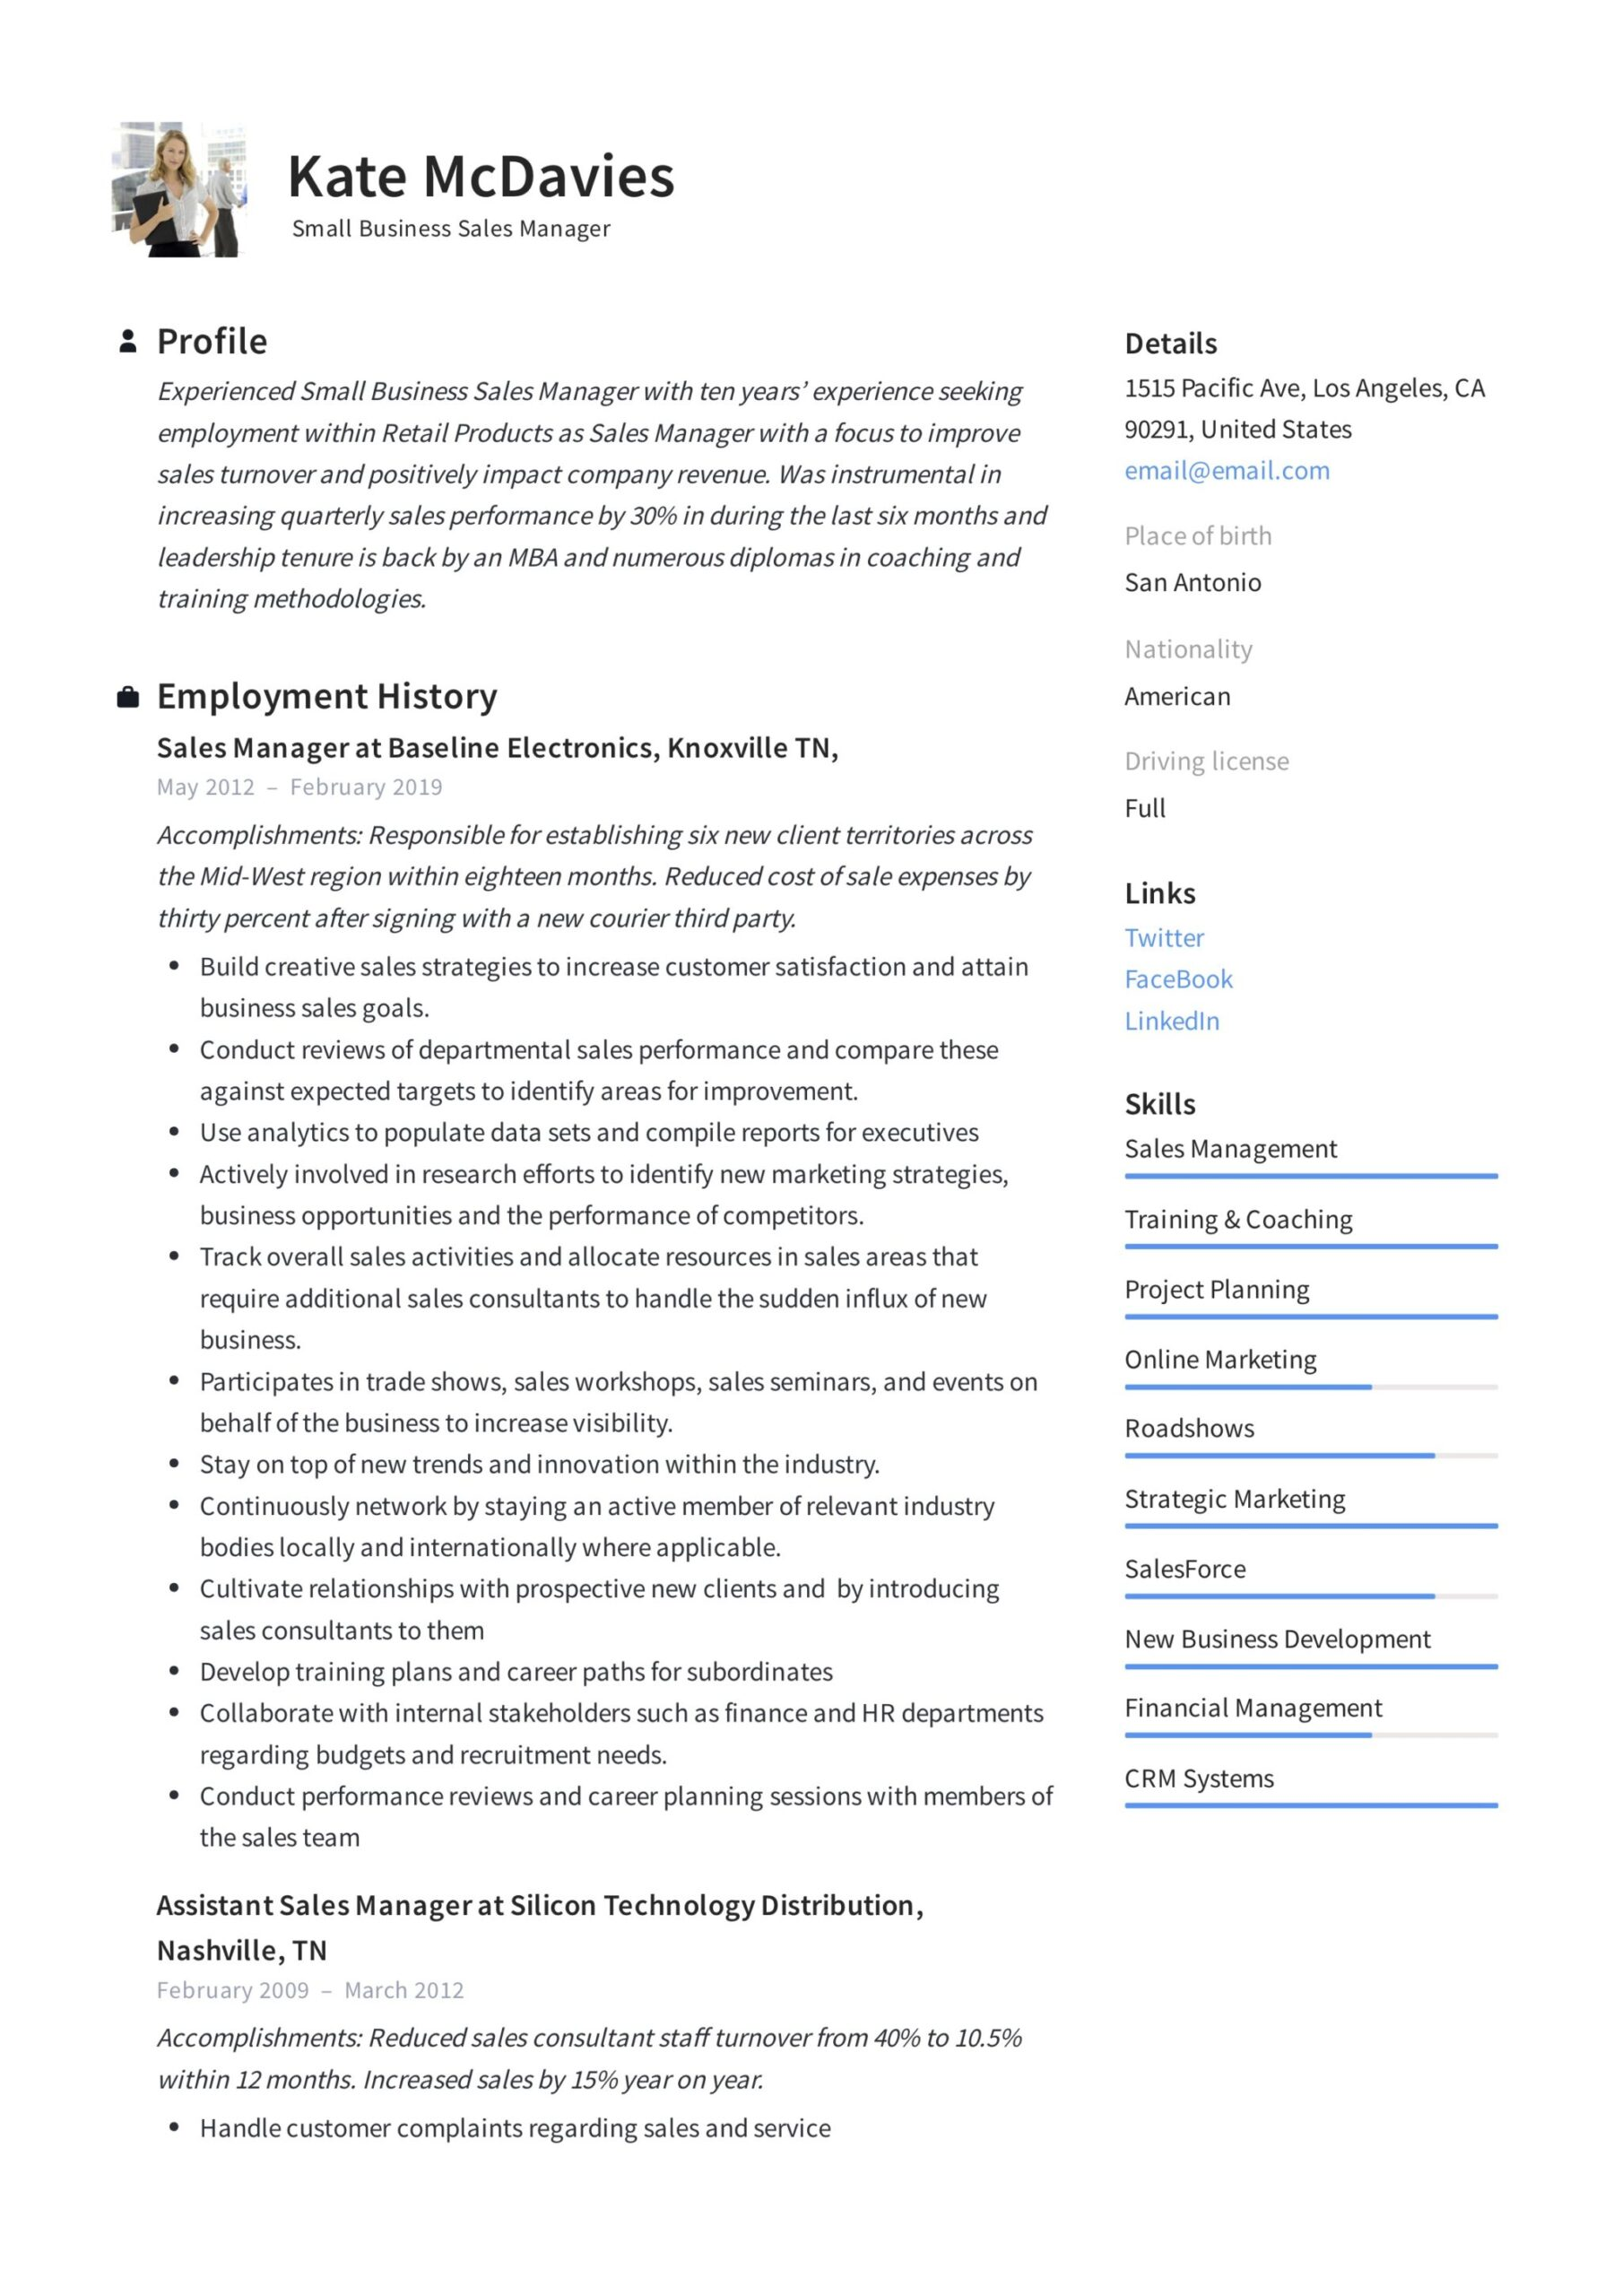 guide small business manager resume x12 sample pdf management experience example analyst Resume Management Experience Resume